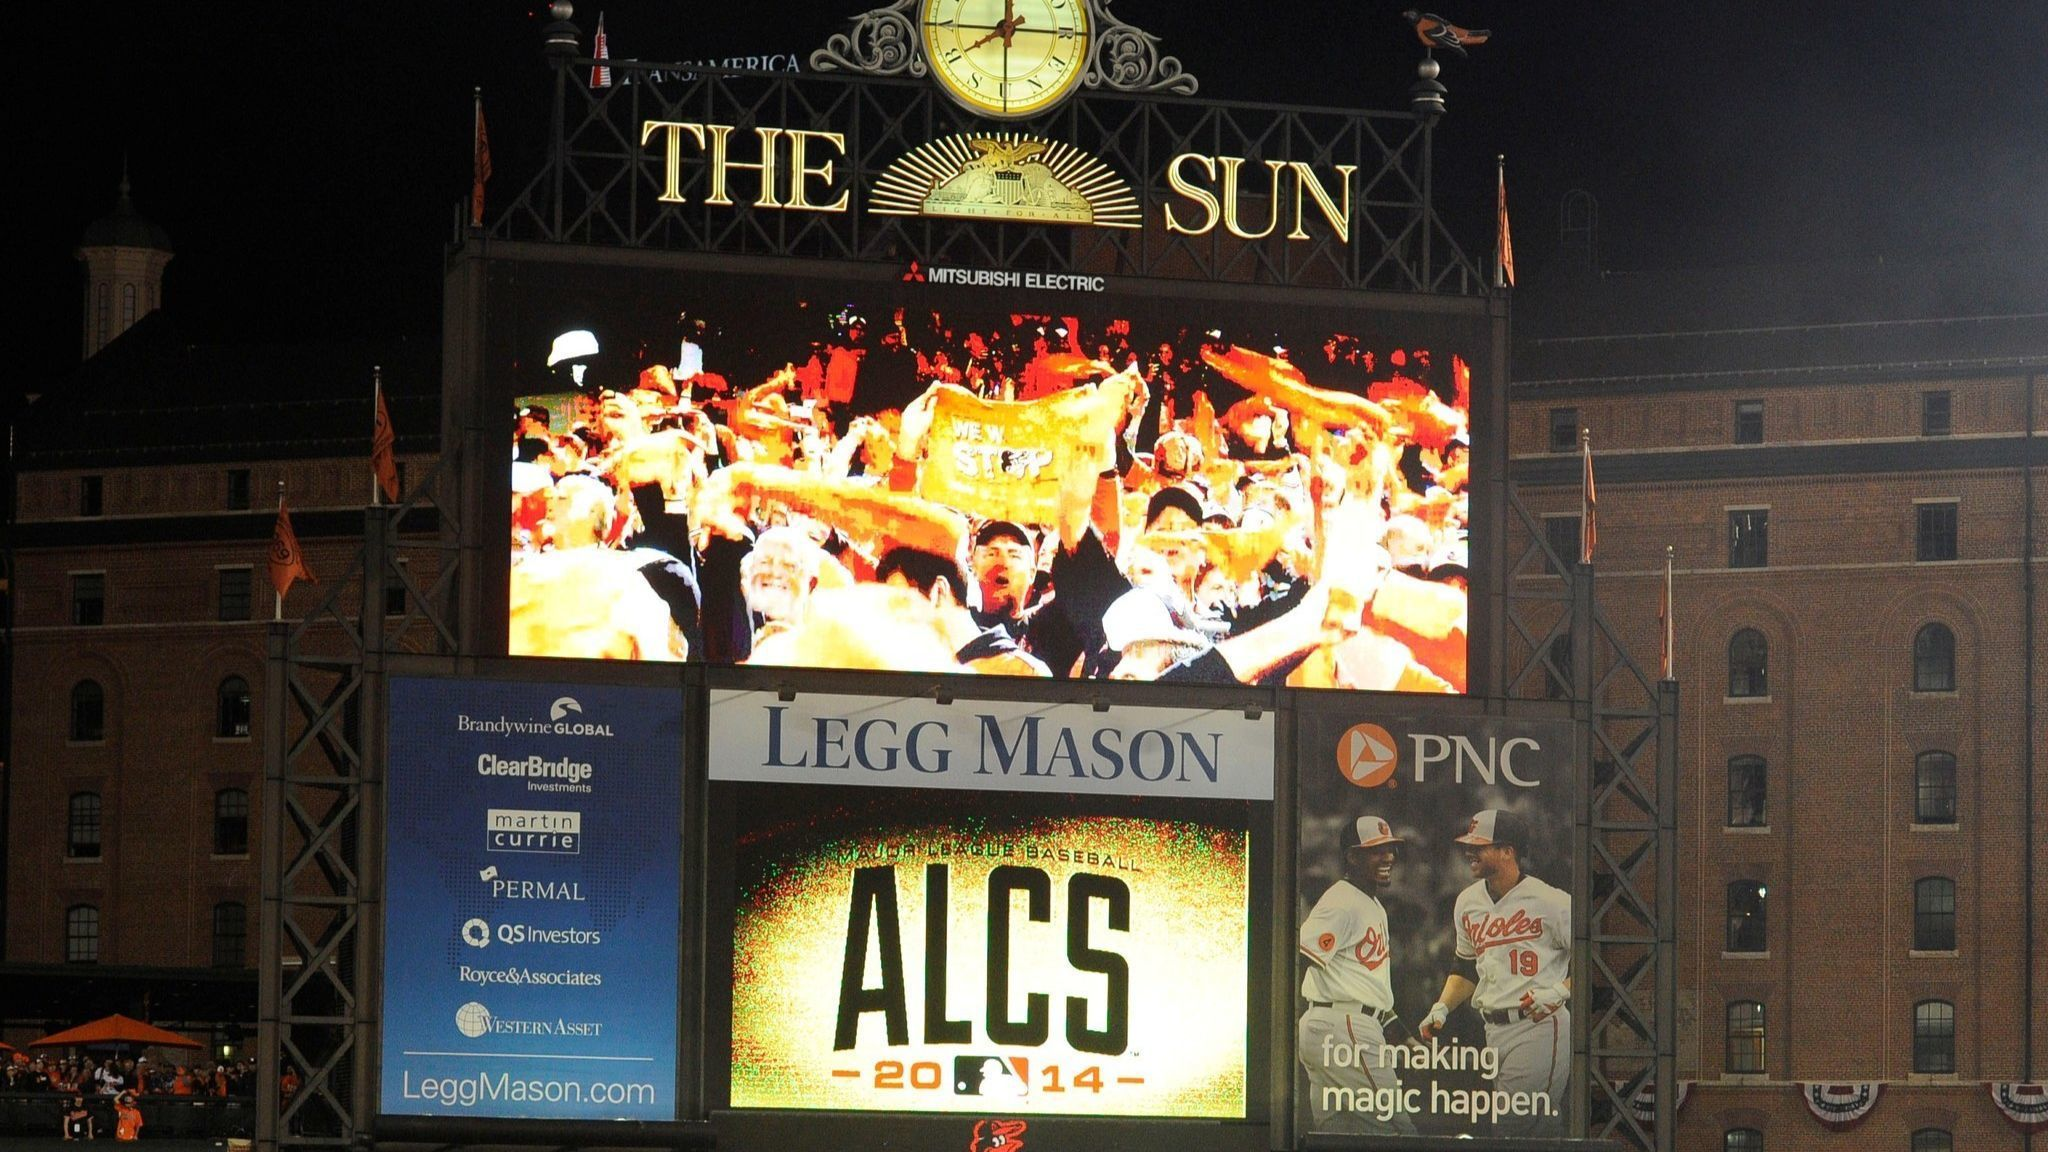 Legg Mason ends sponsorships with Orioles and Ravens